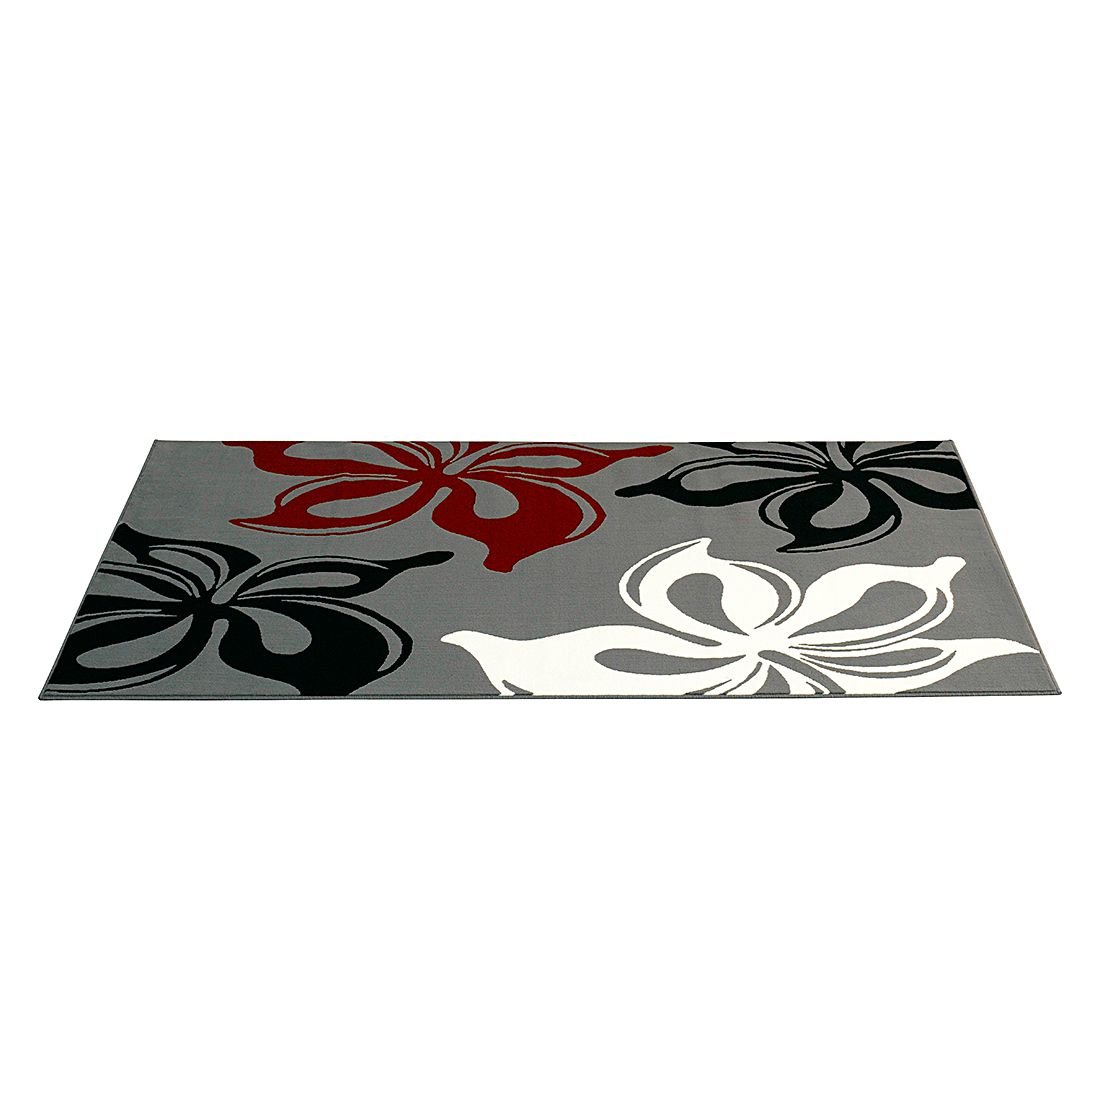 Teppich Flower – Grau – 200 x 290 cm, Hanse Home Collection online kaufen